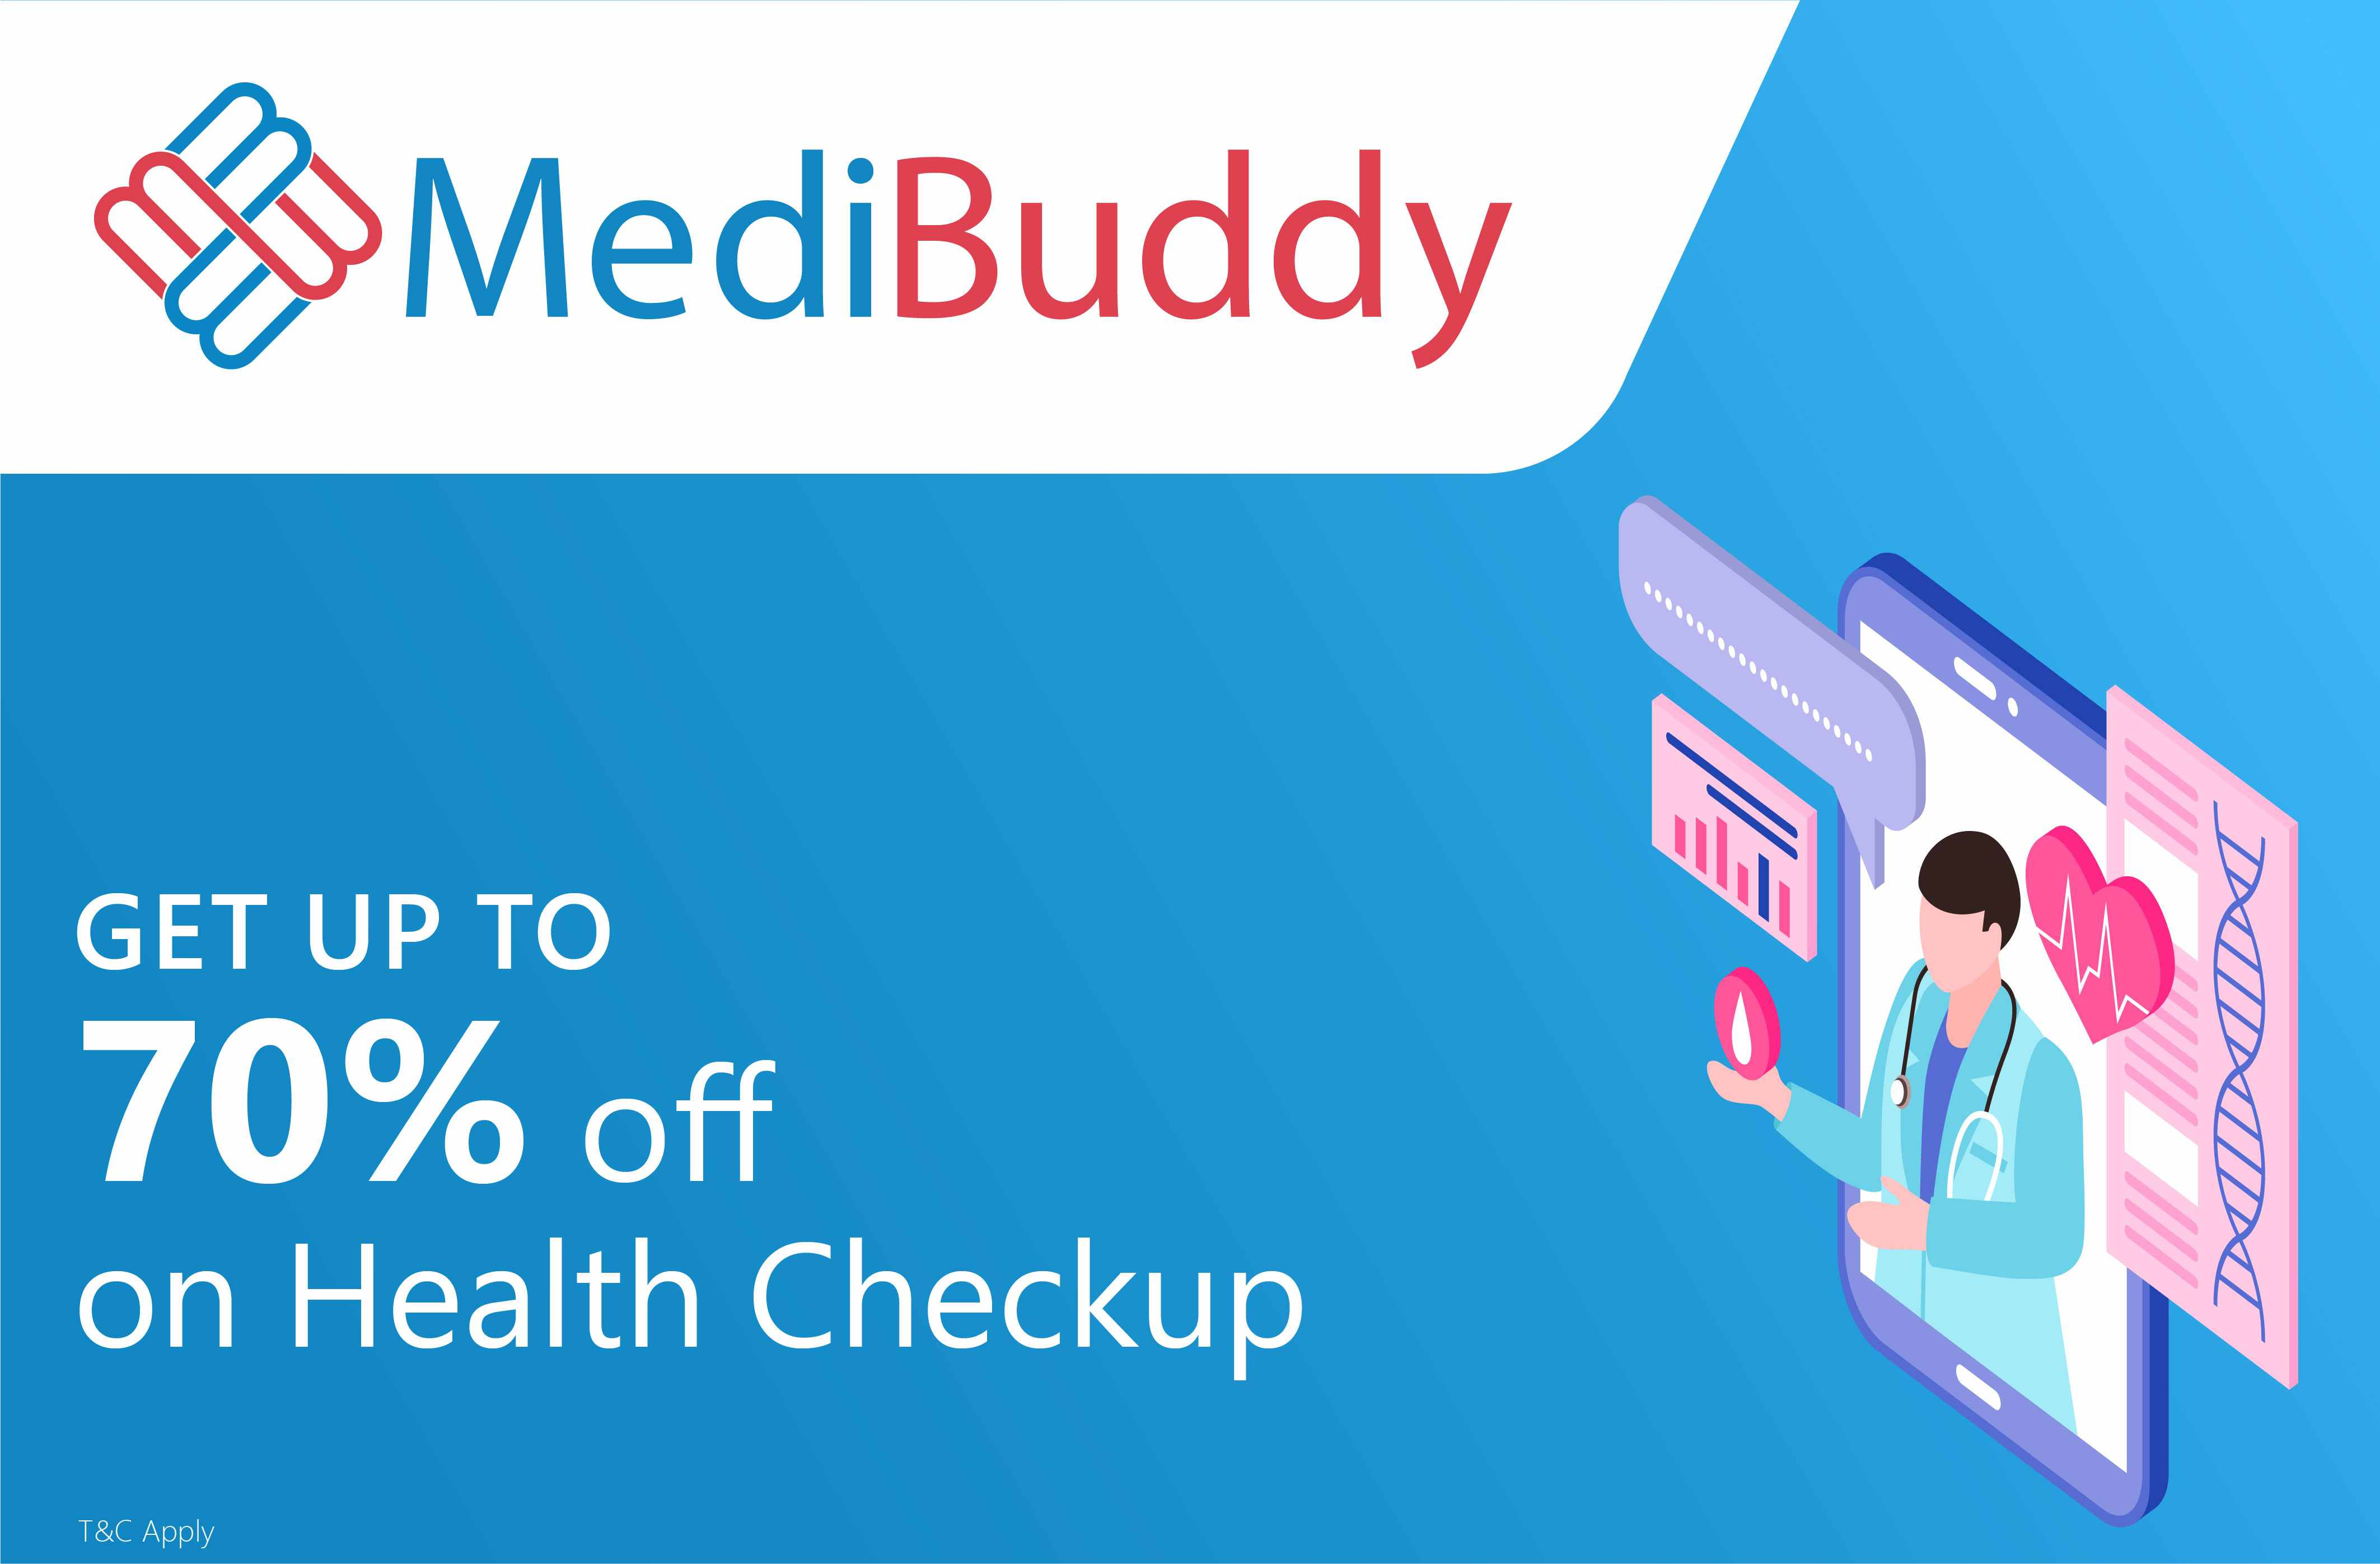 Up to 70% off on Health CheckUp